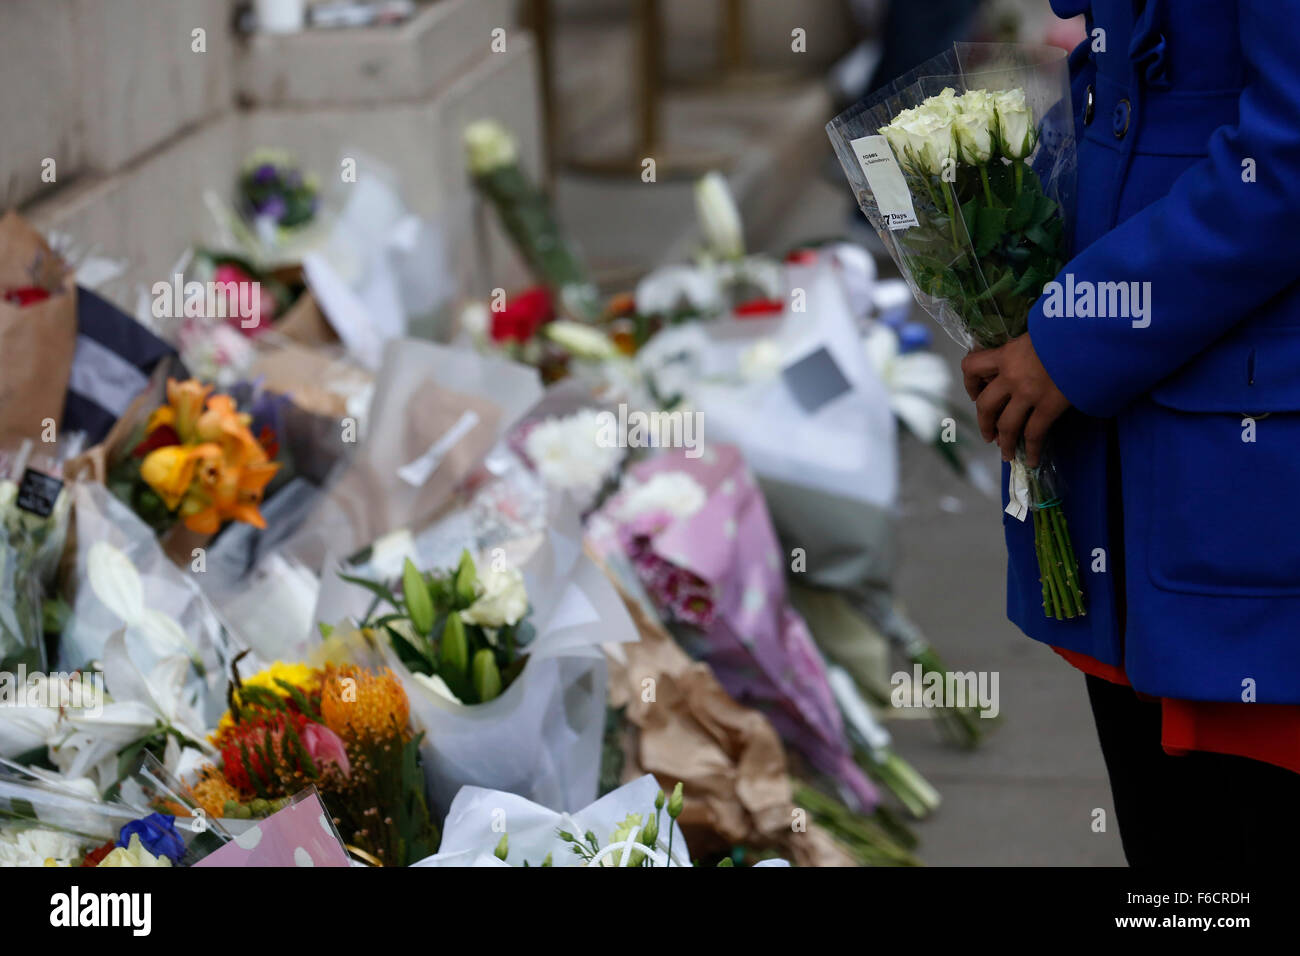 London, UK. 16th Nov, 2015. A woman prepares to lay flowers outside the Embassy of France in London, UK, Monday, Stock Photo